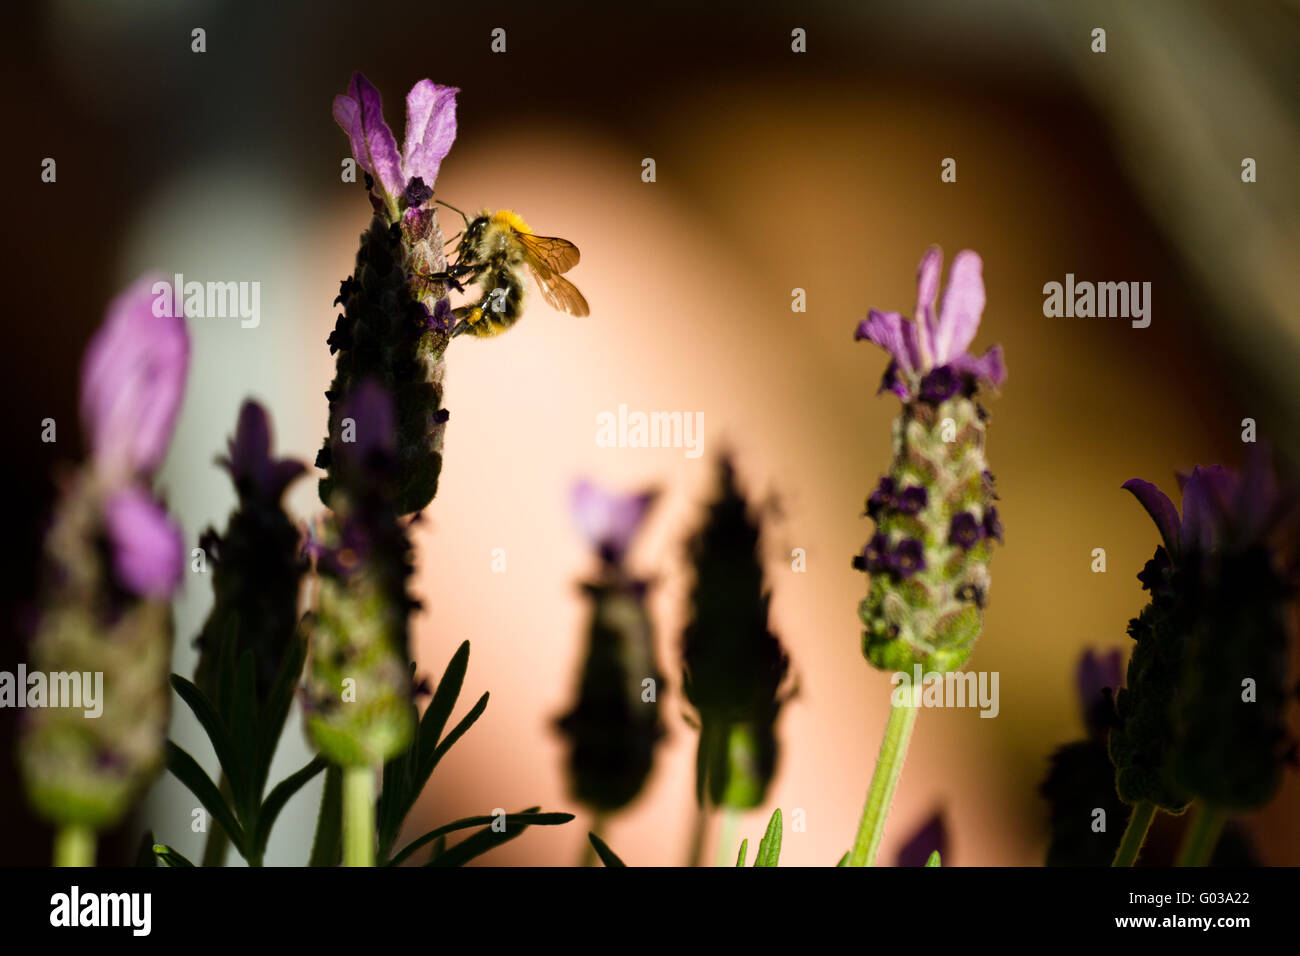 Bumble bee and lavender - Stock Image